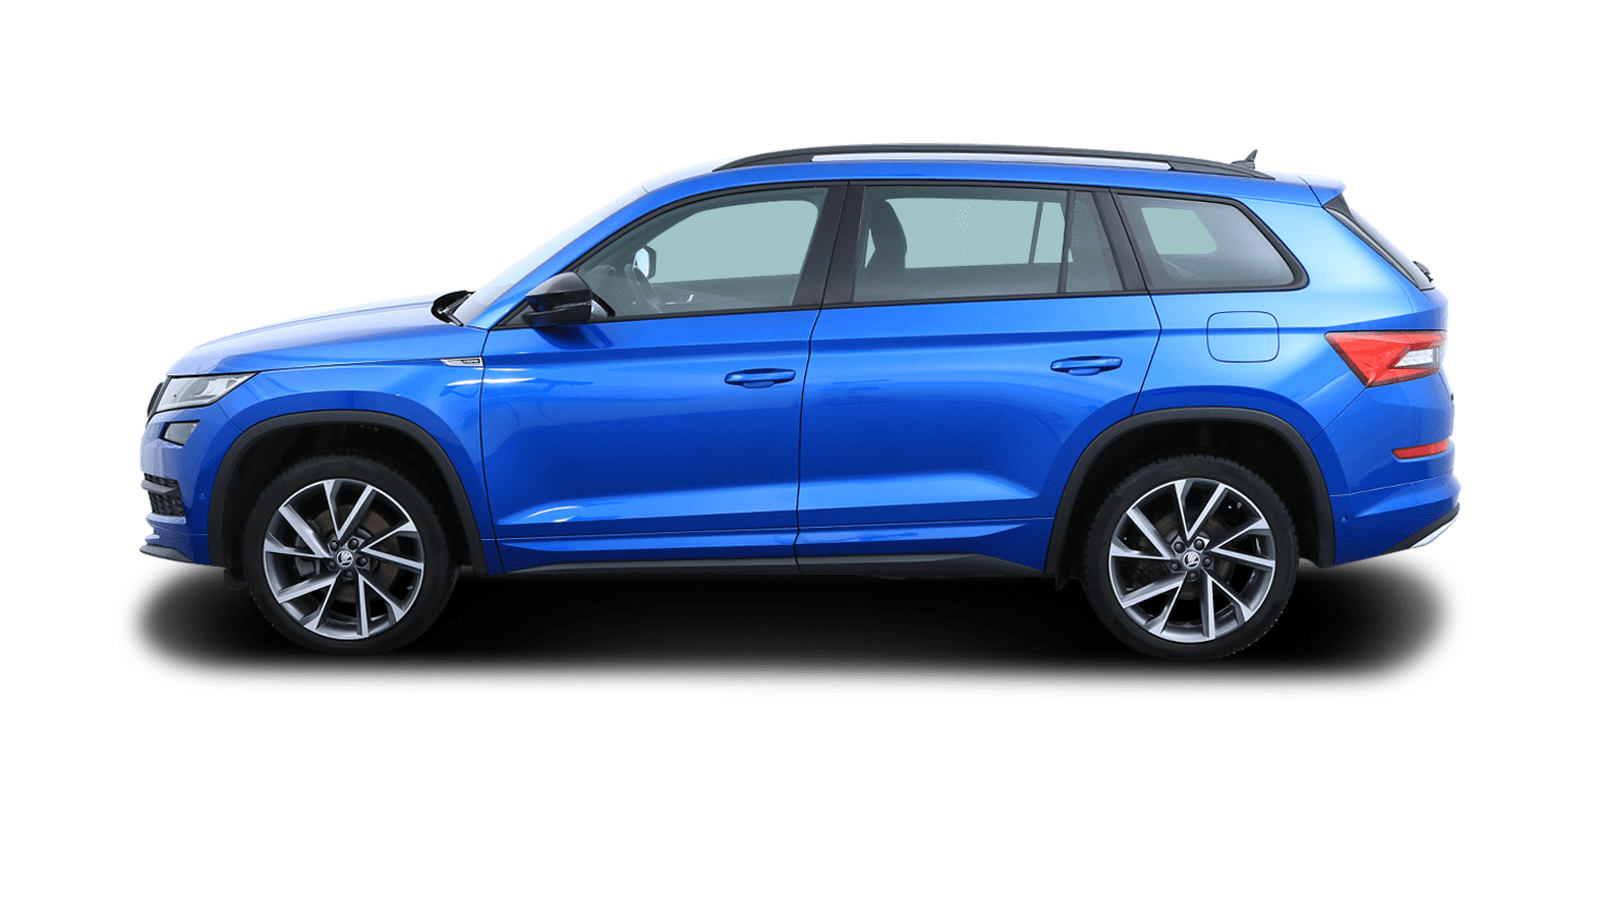 ŠKODA KODIAQ SPORTLINE Blue back - Clyde car subscription